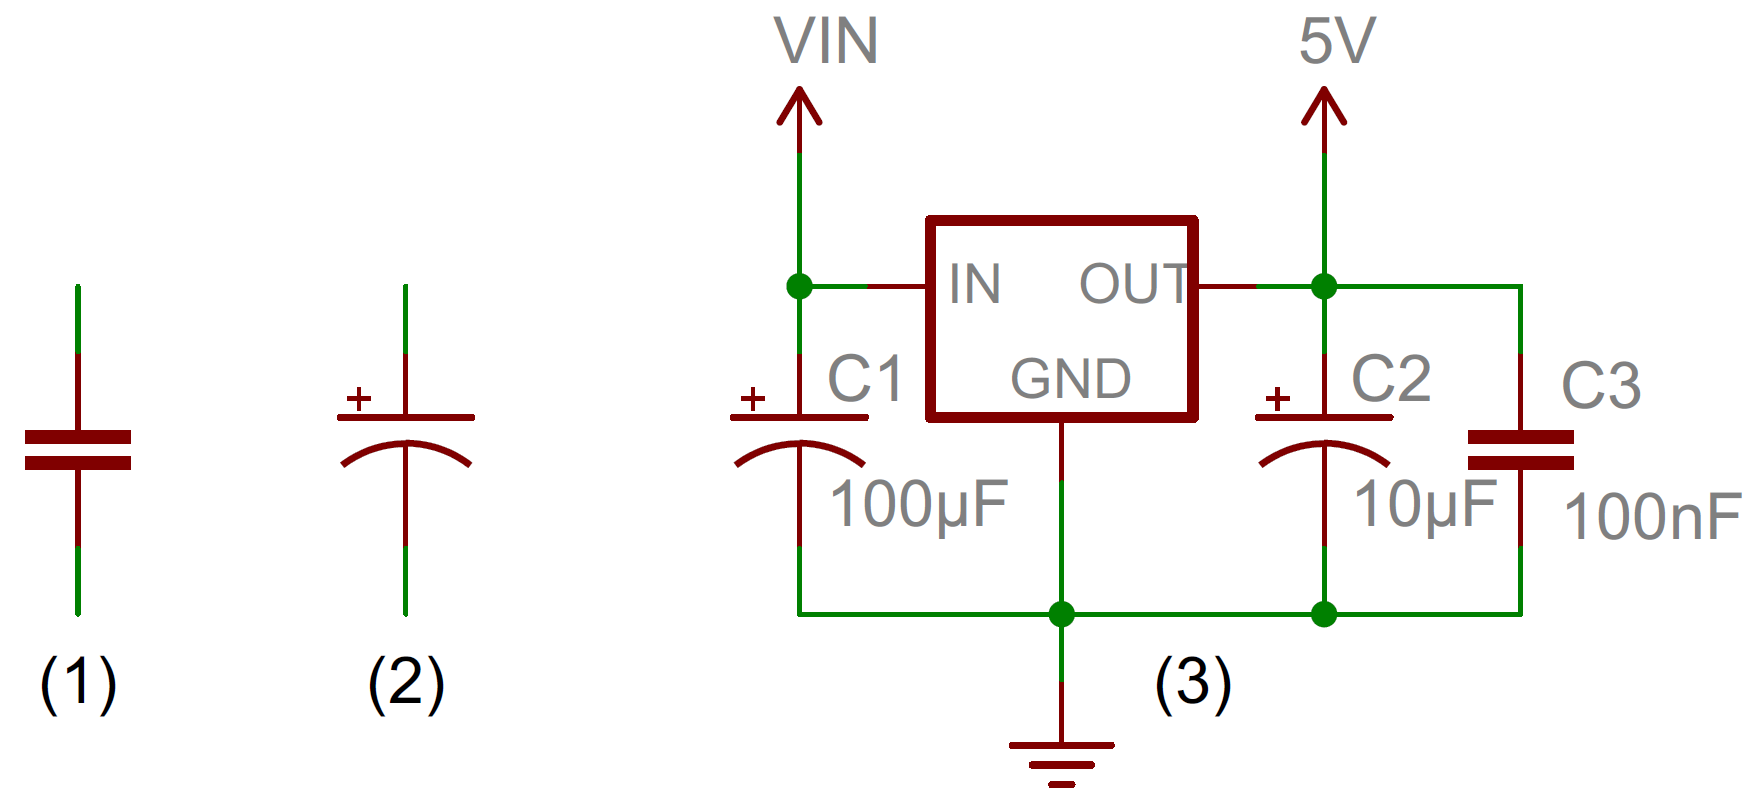 Capacitors 24v Rectifier Wiring Diagram Capacitor Circuit Symbols